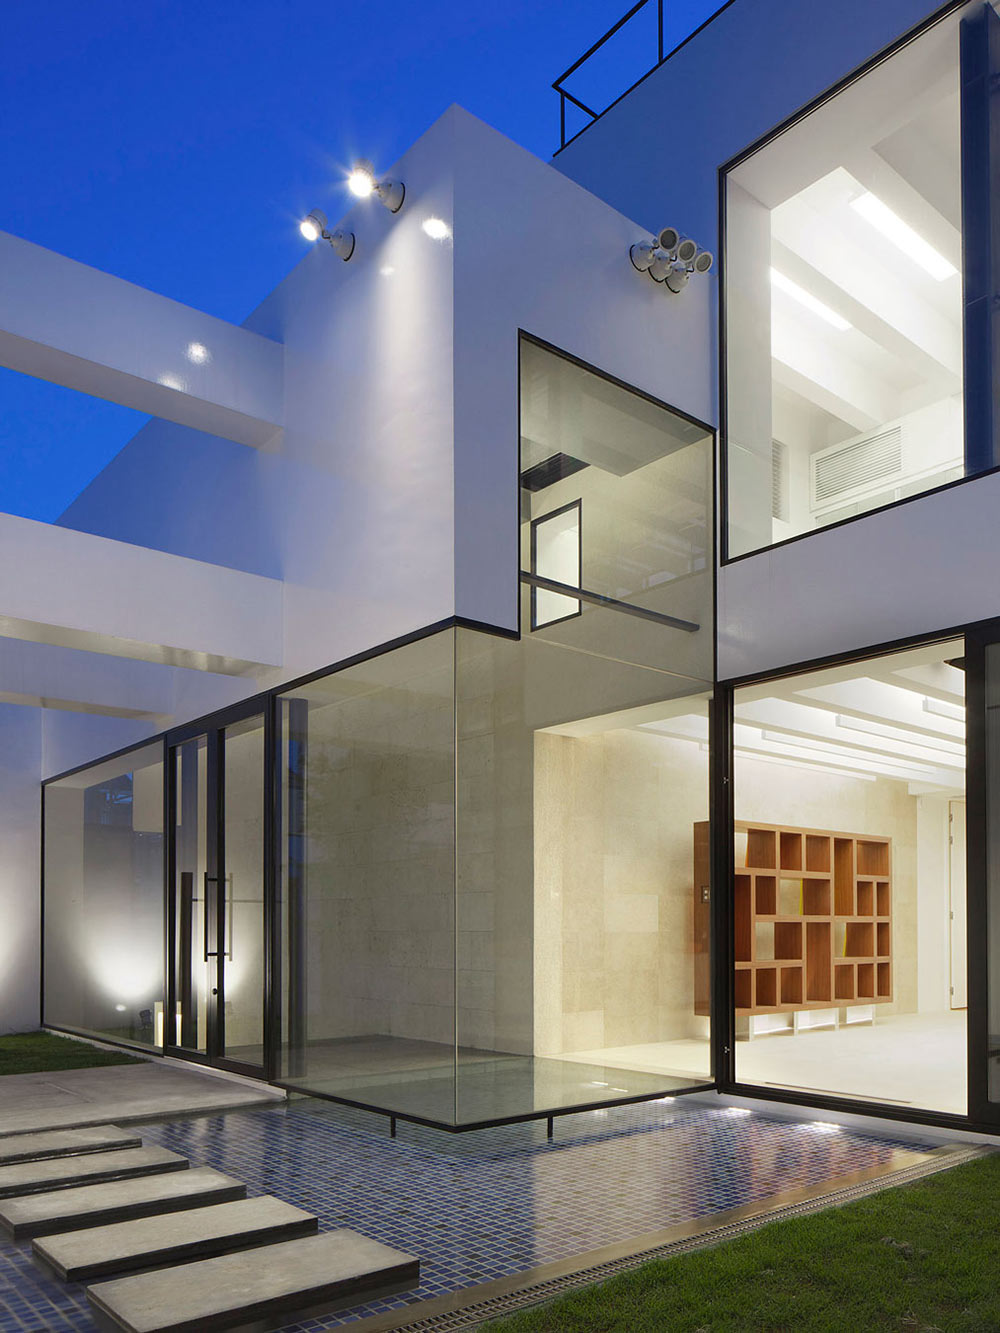 Water Feature, Glass Doors, Bright Contemporary Home in Tokyo, Japan